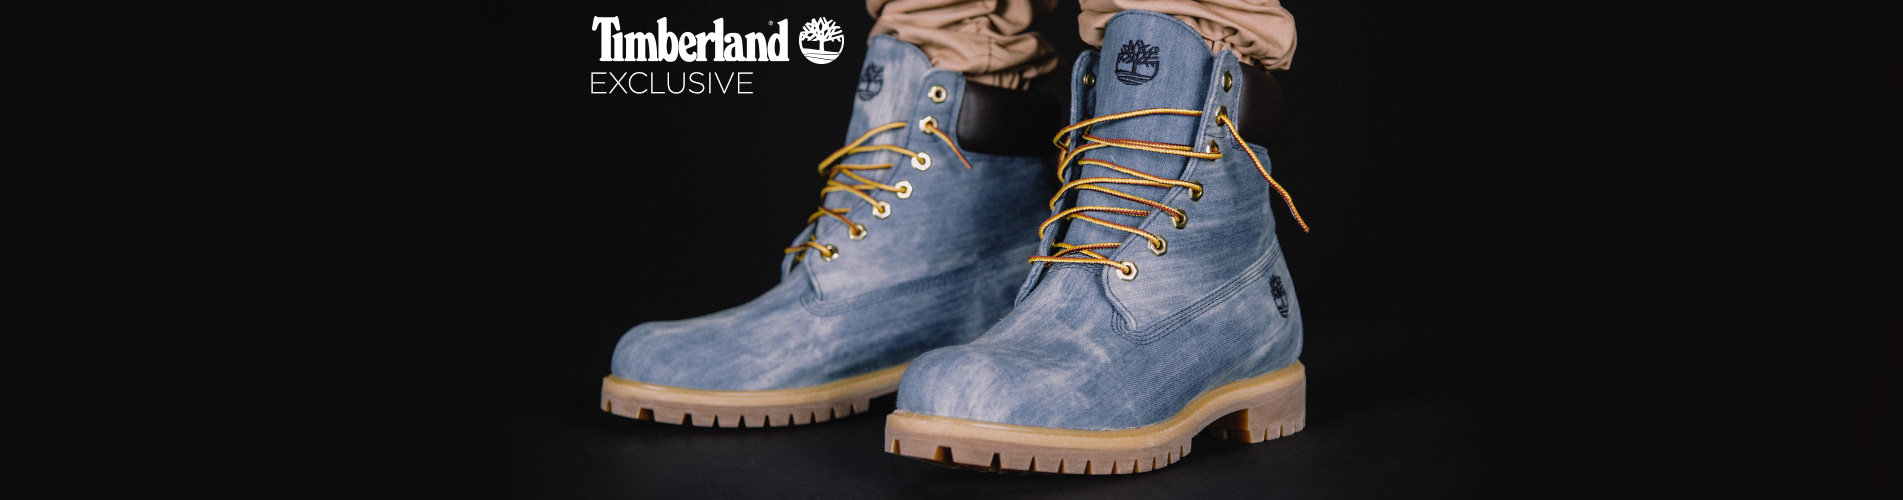 Timberland Boots Outlet | Cheap Timberland Boots for Women | Colored Timberlands